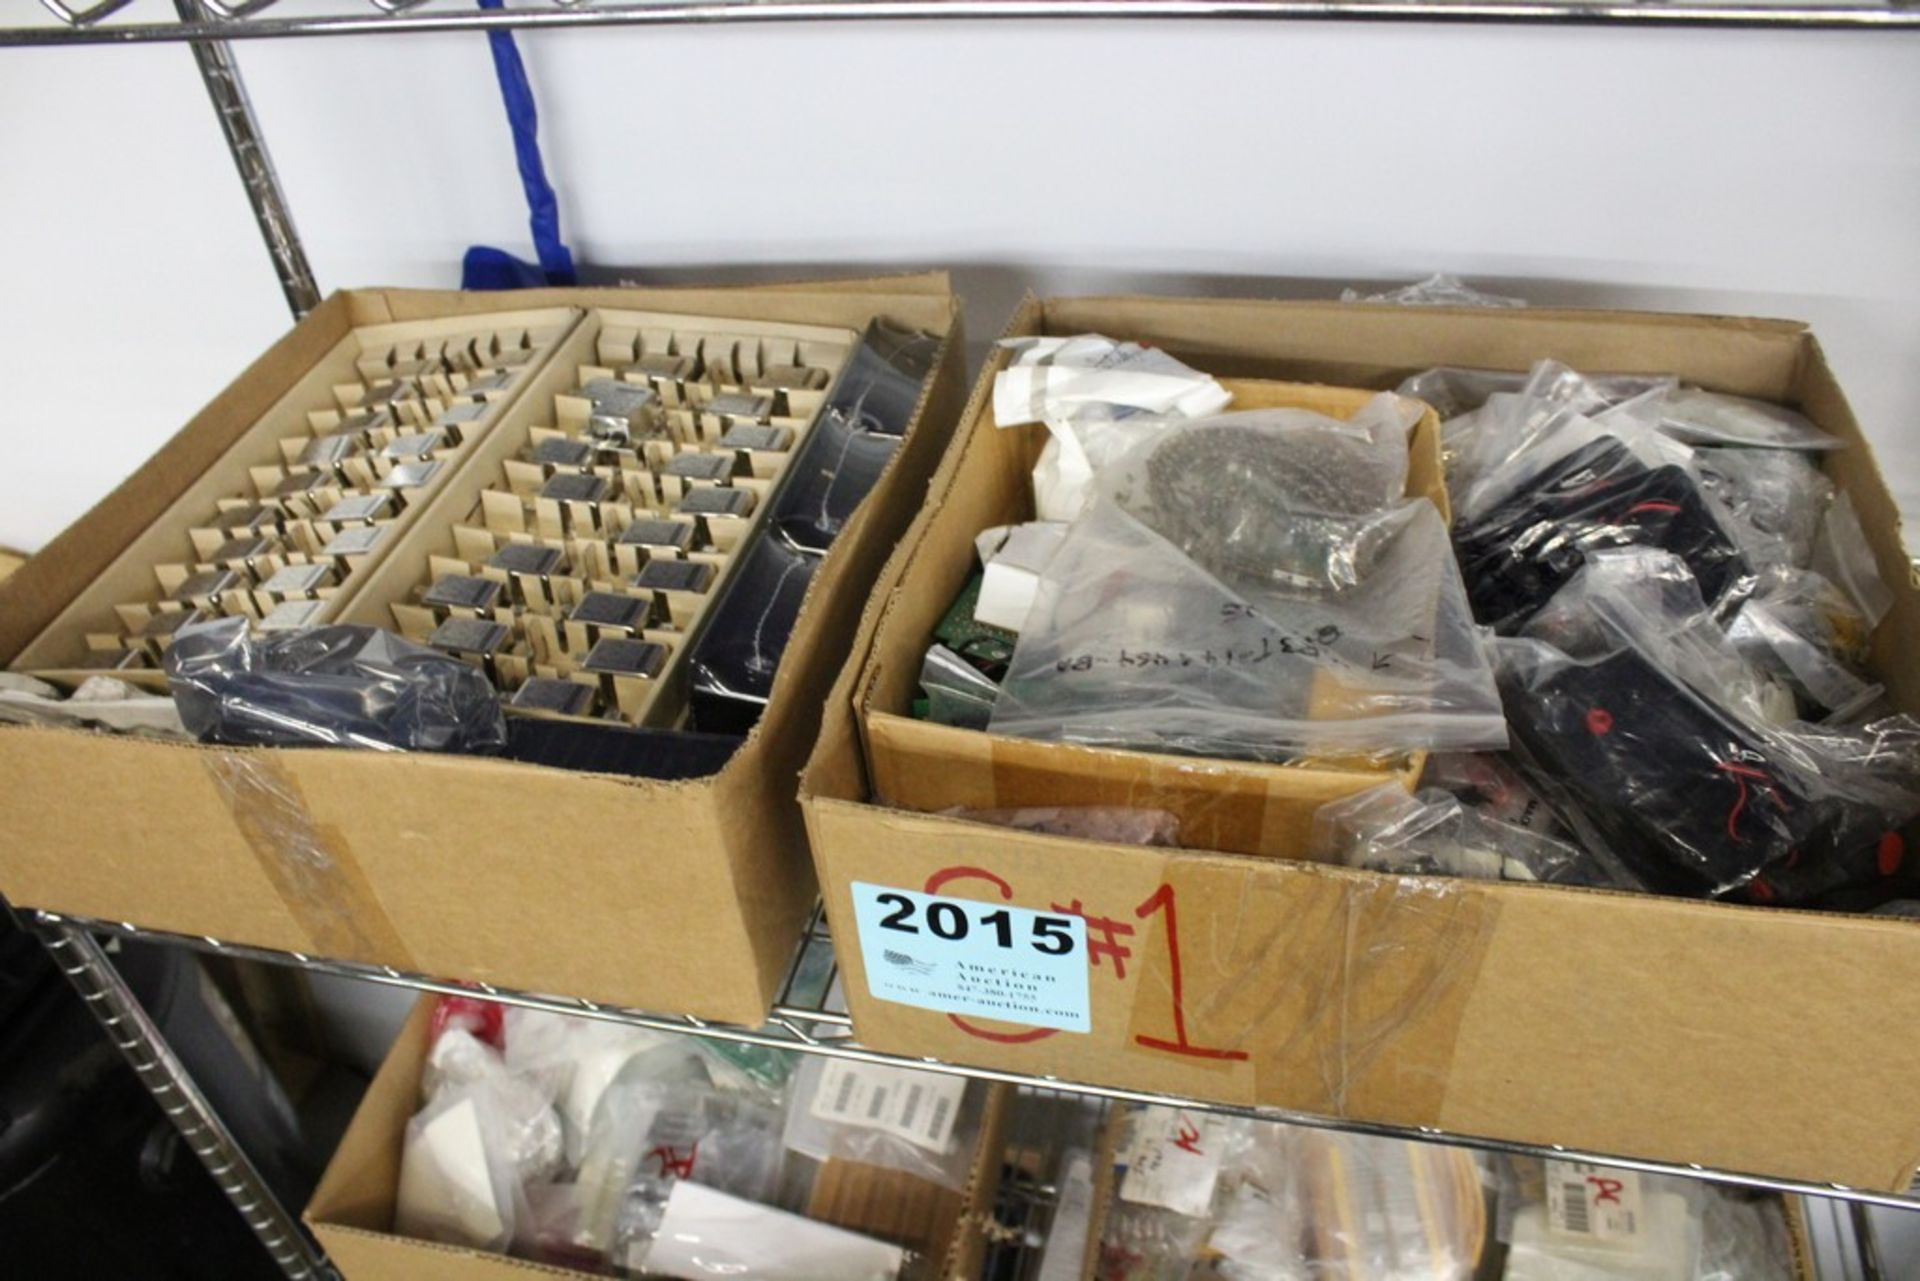 Lot 2015 - WIRING COMPONENTS ON SHELF